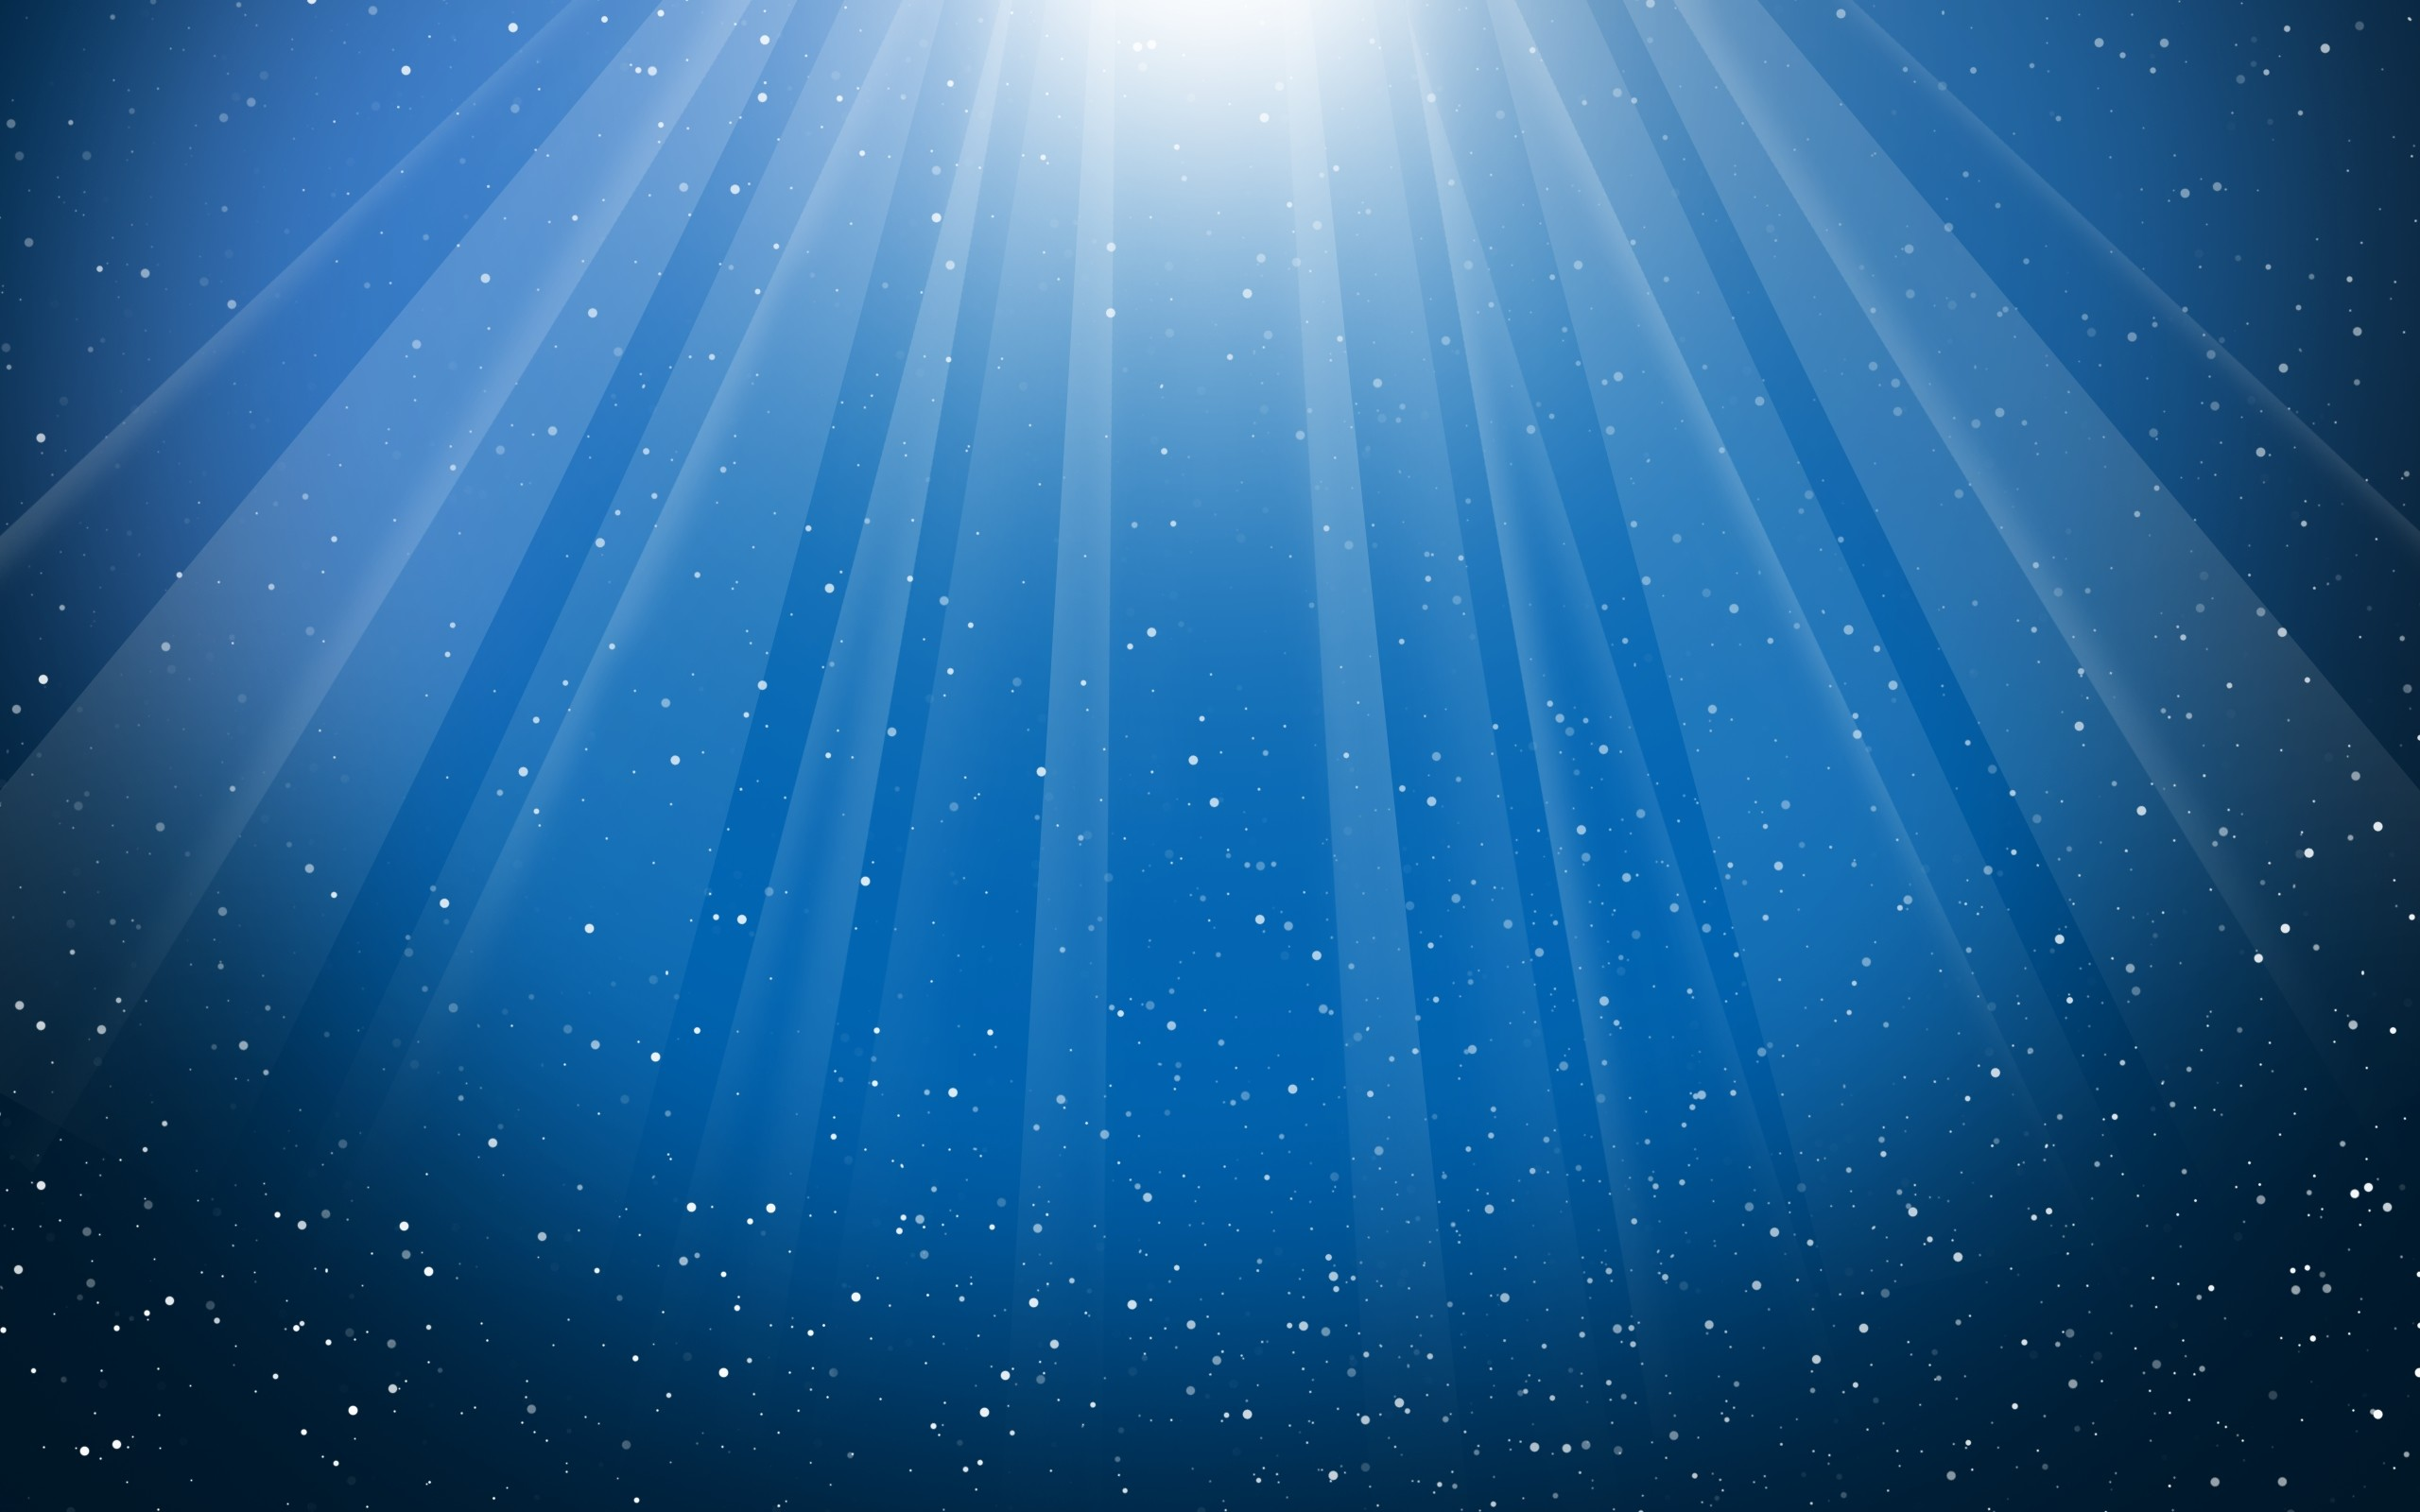 2560x1600 Wallpaper Light, Shiny, Blue, Lines, Fan